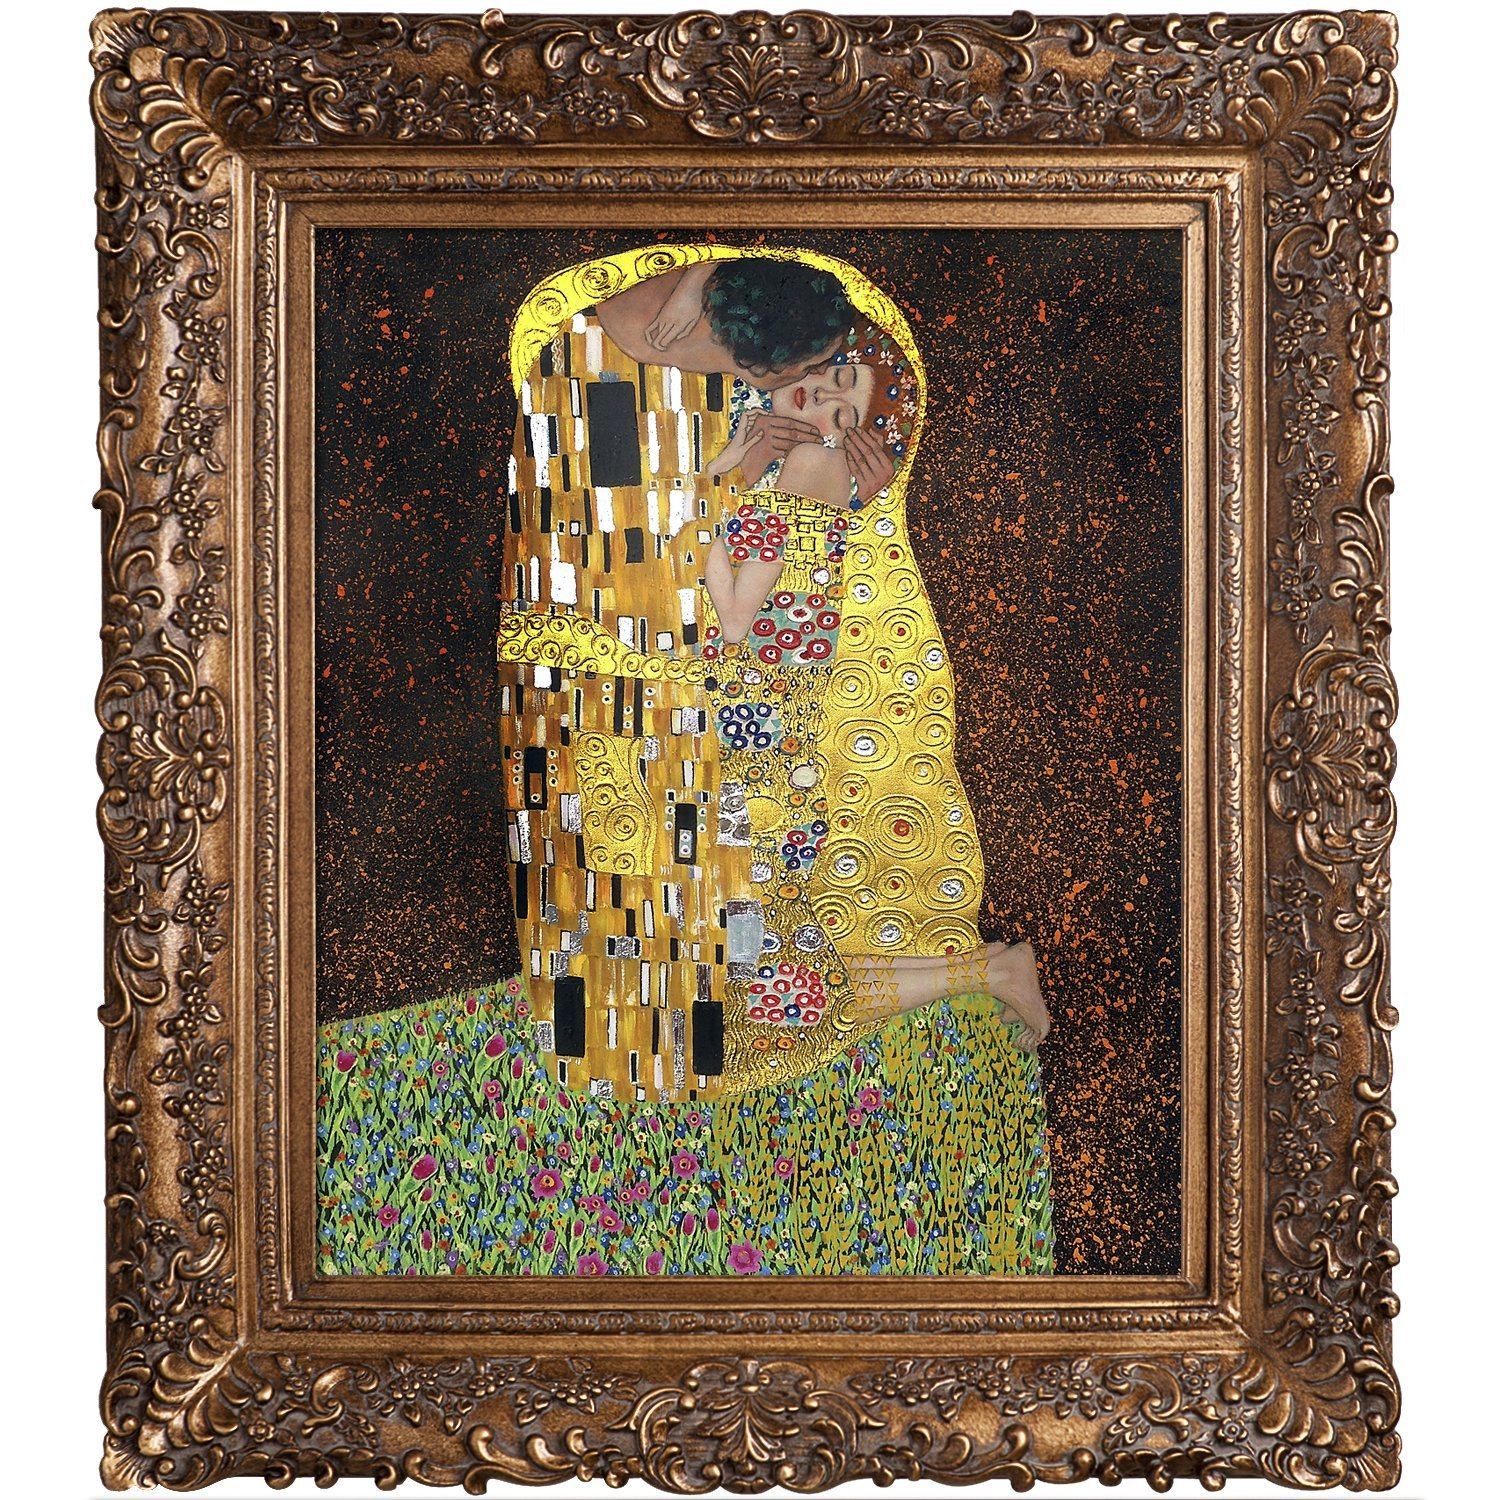 Cheap Gold Klimt, find Gold Klimt deals on line at Alibaba.com